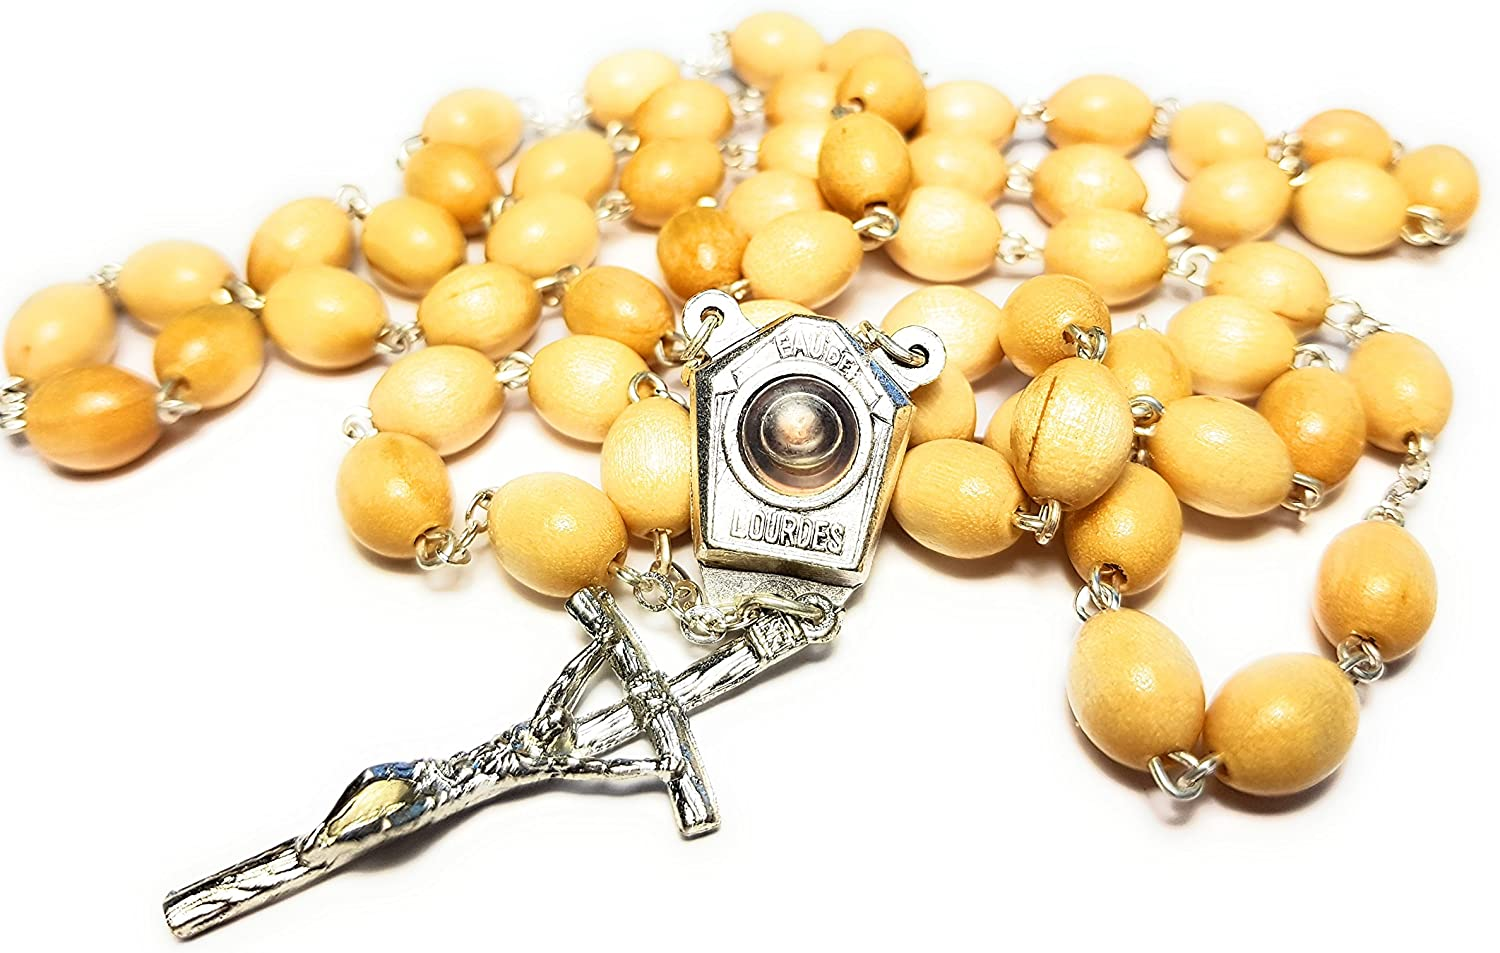 Genuine Virgin Mary Our Lady of Lourdes Rosary Holy Water from Lourdes Centerpiece EU Made Birchwood Beads: 3/8